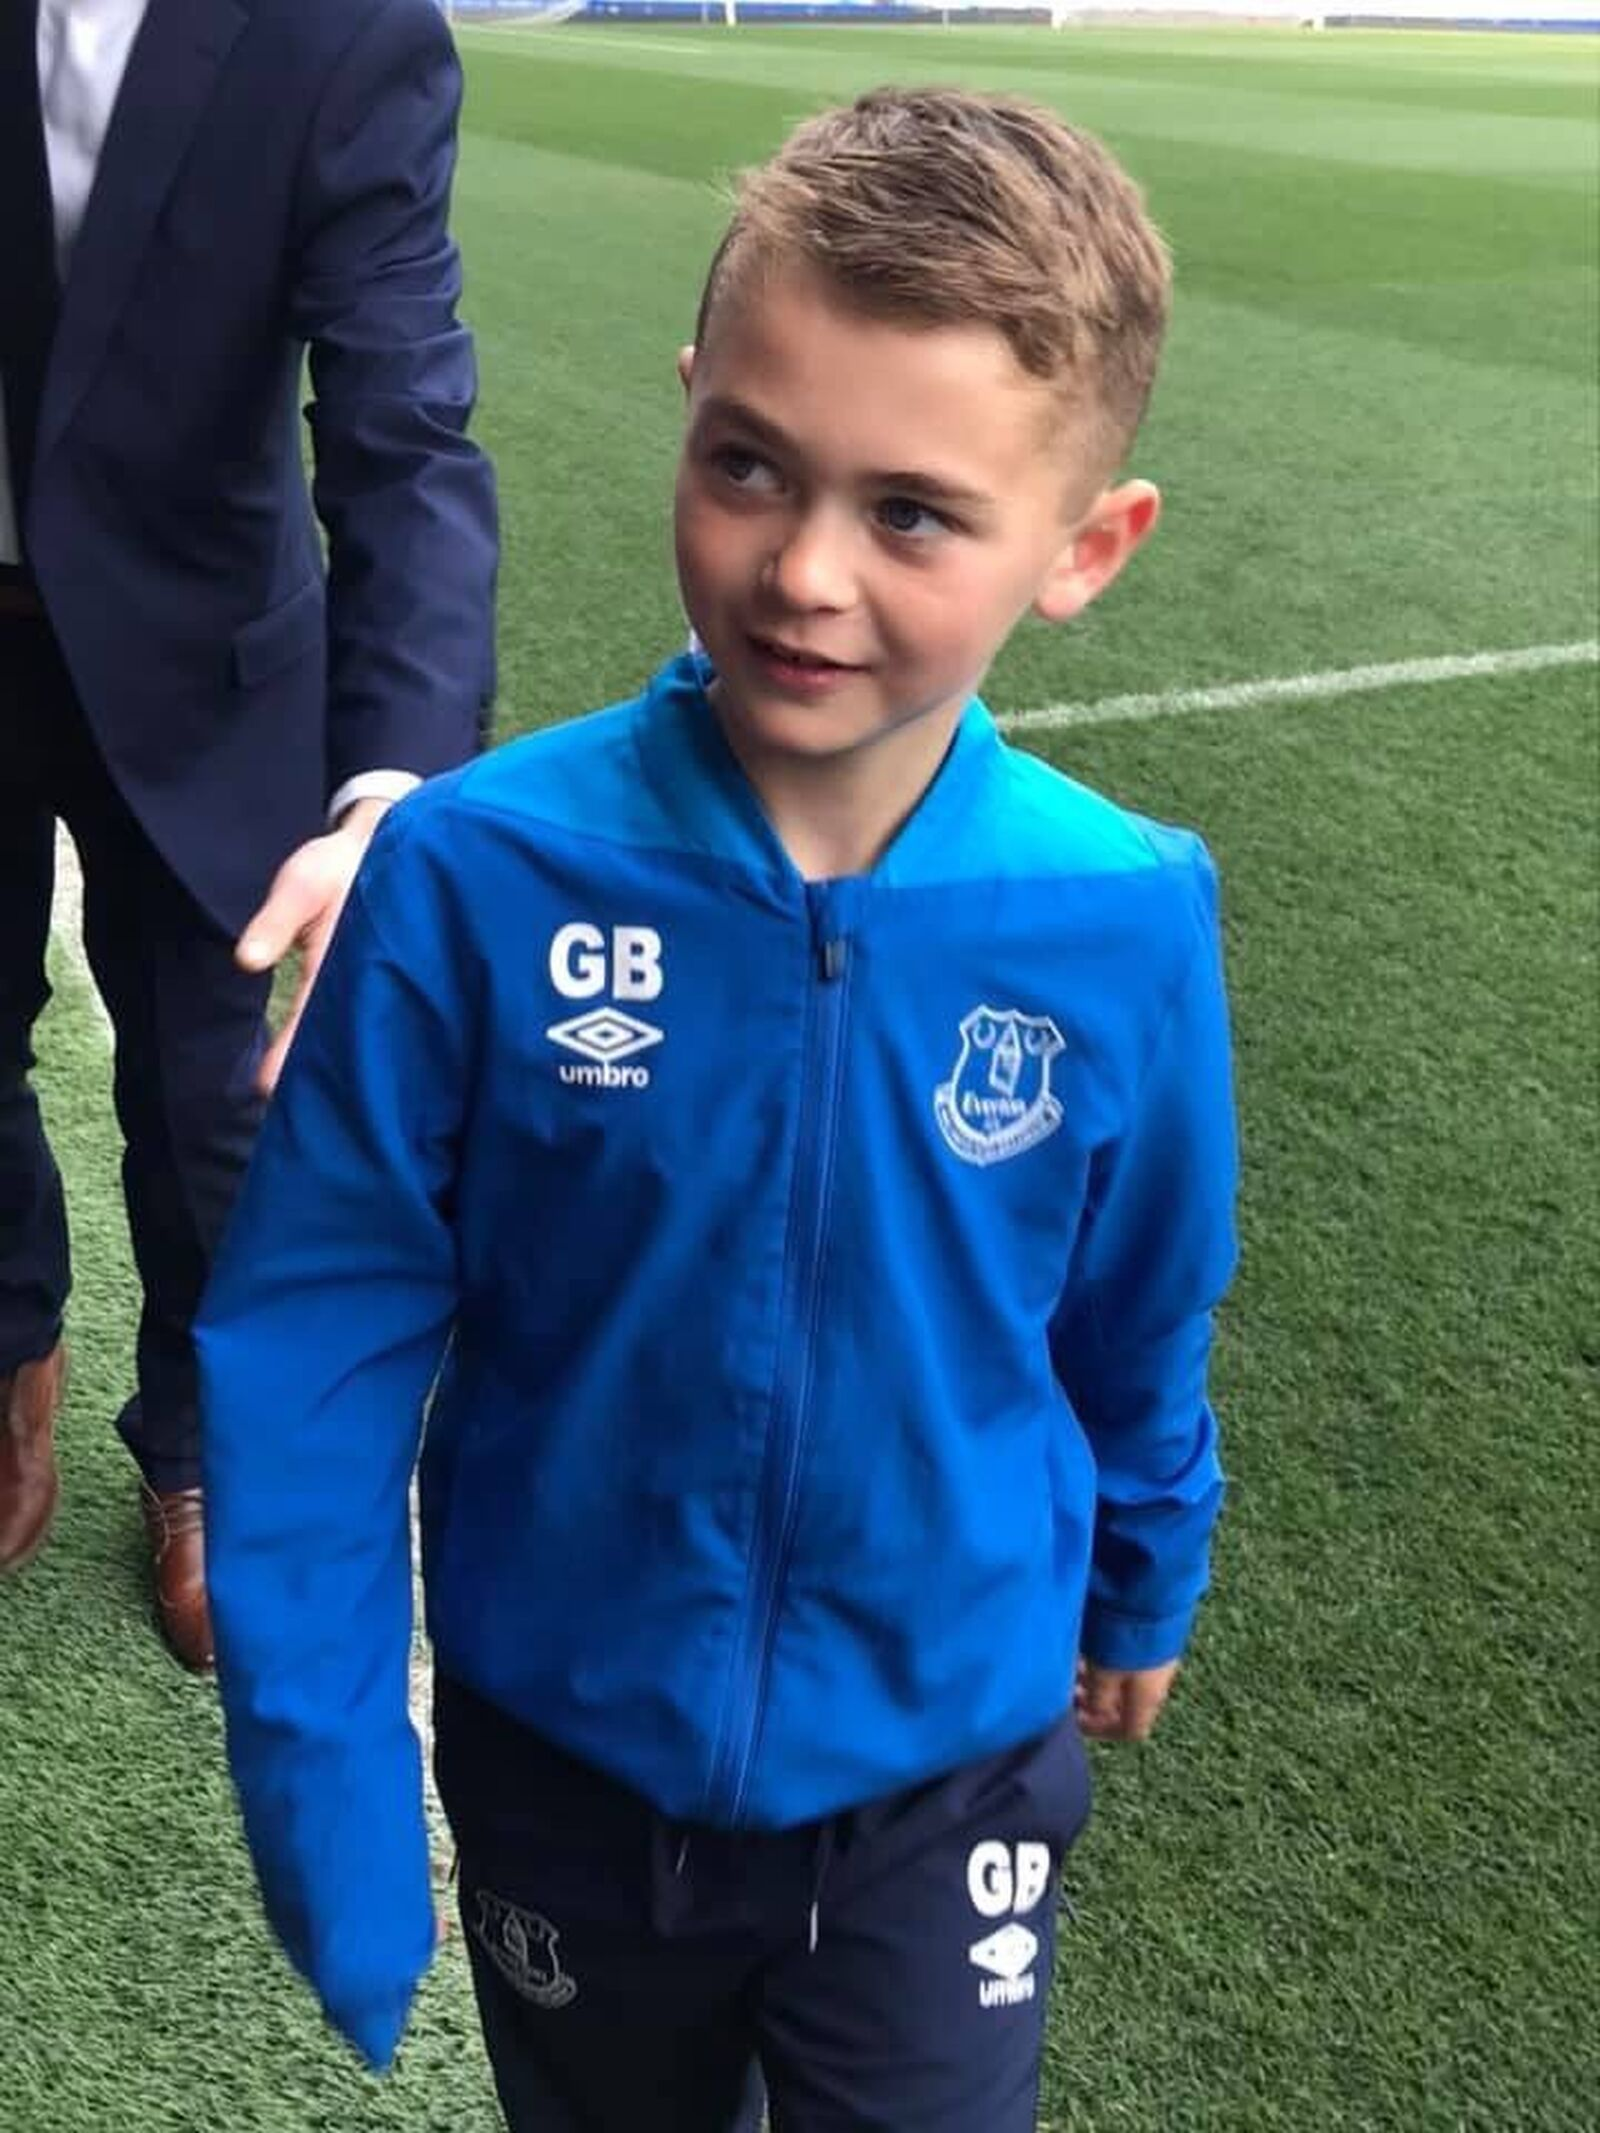 Ormskirk FC Under 8s Player Signs for Everton FC